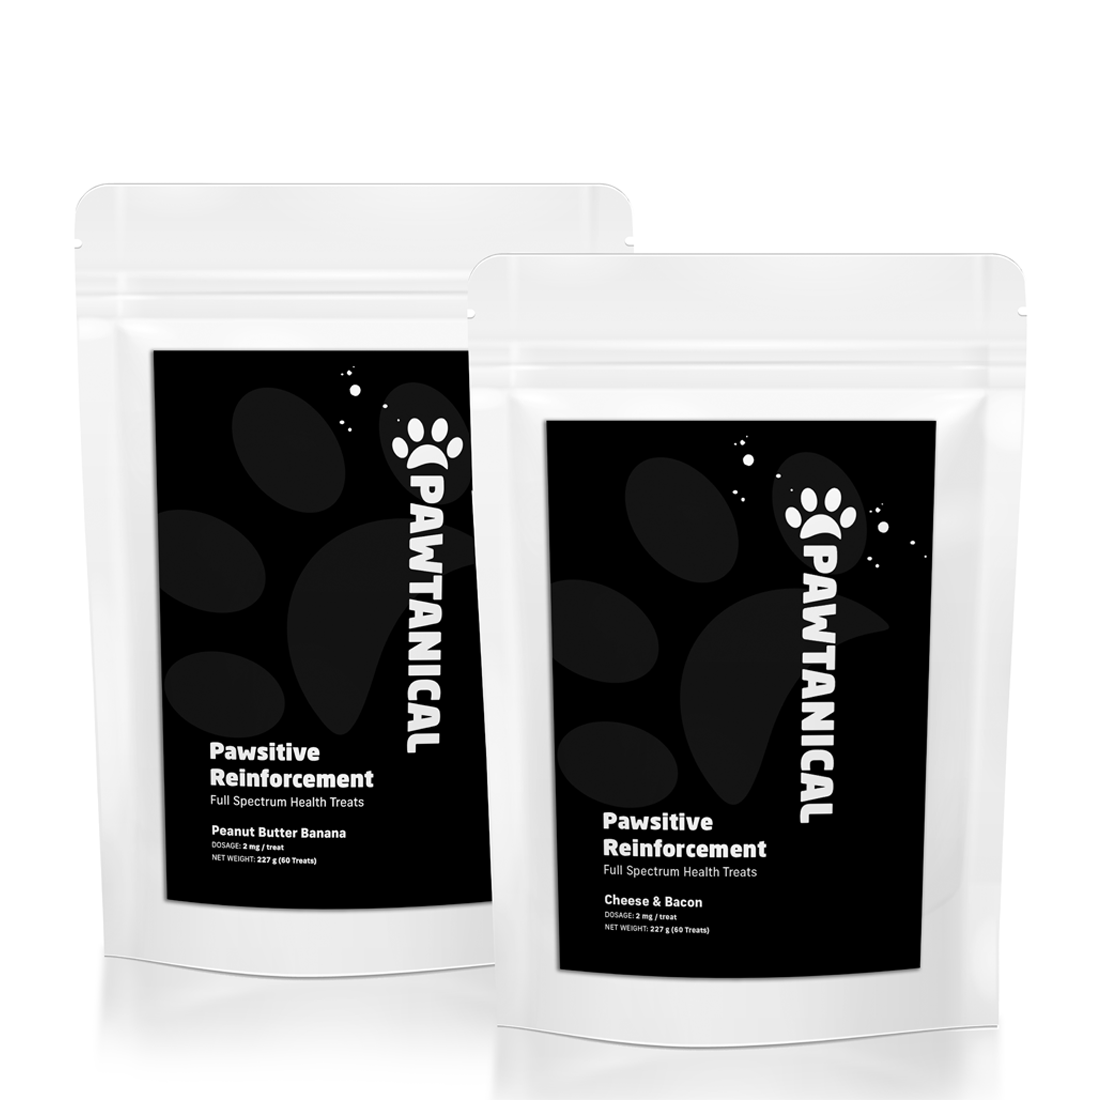 Pawtanical Pawsitive Reinforcement Peanut Butter & Banana Dog Treats, 60-count